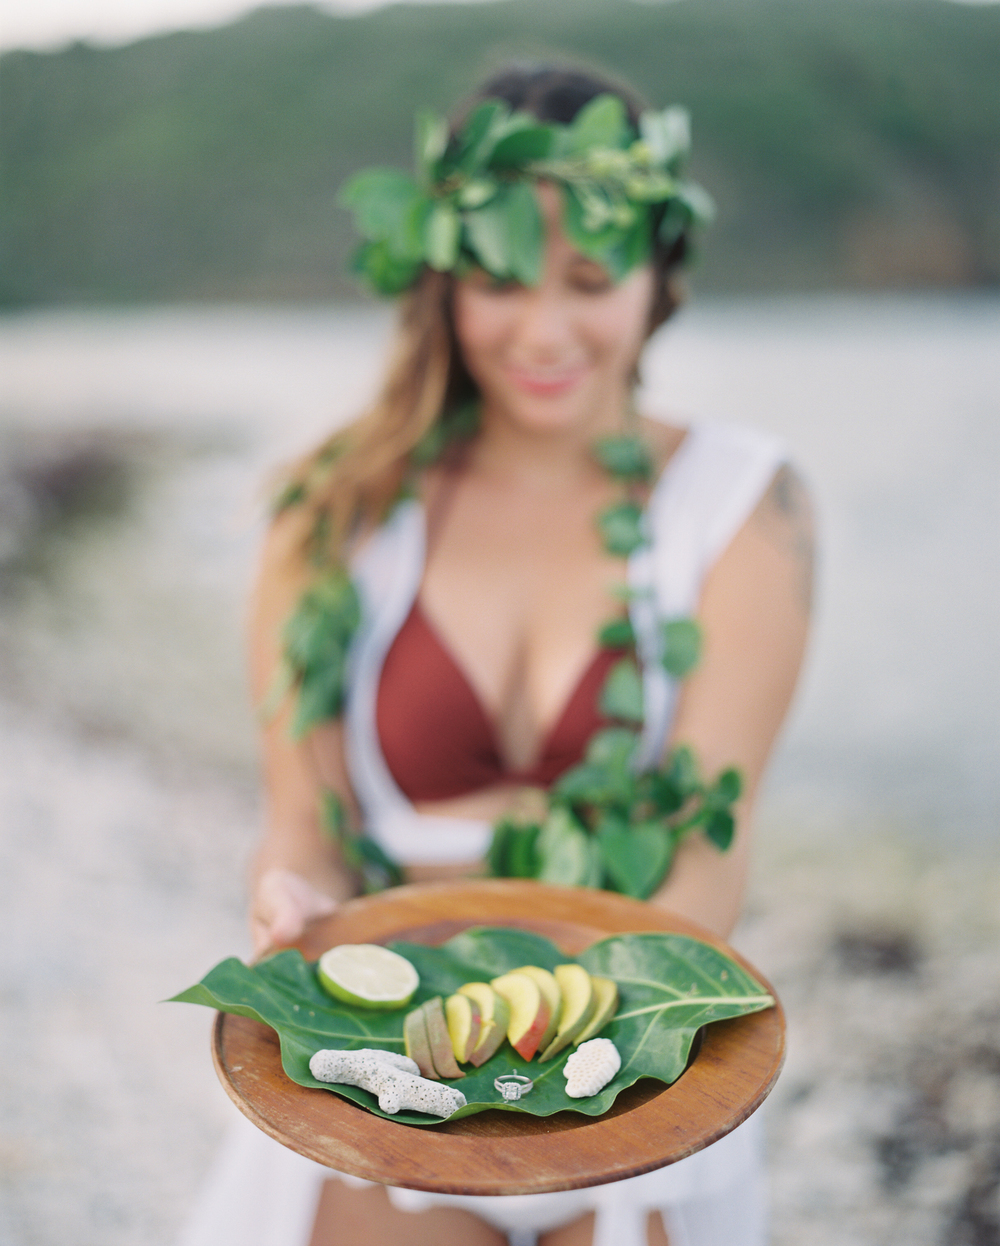 usvi st. thomas, water island tropical beach photo shoot mango & leaf crown